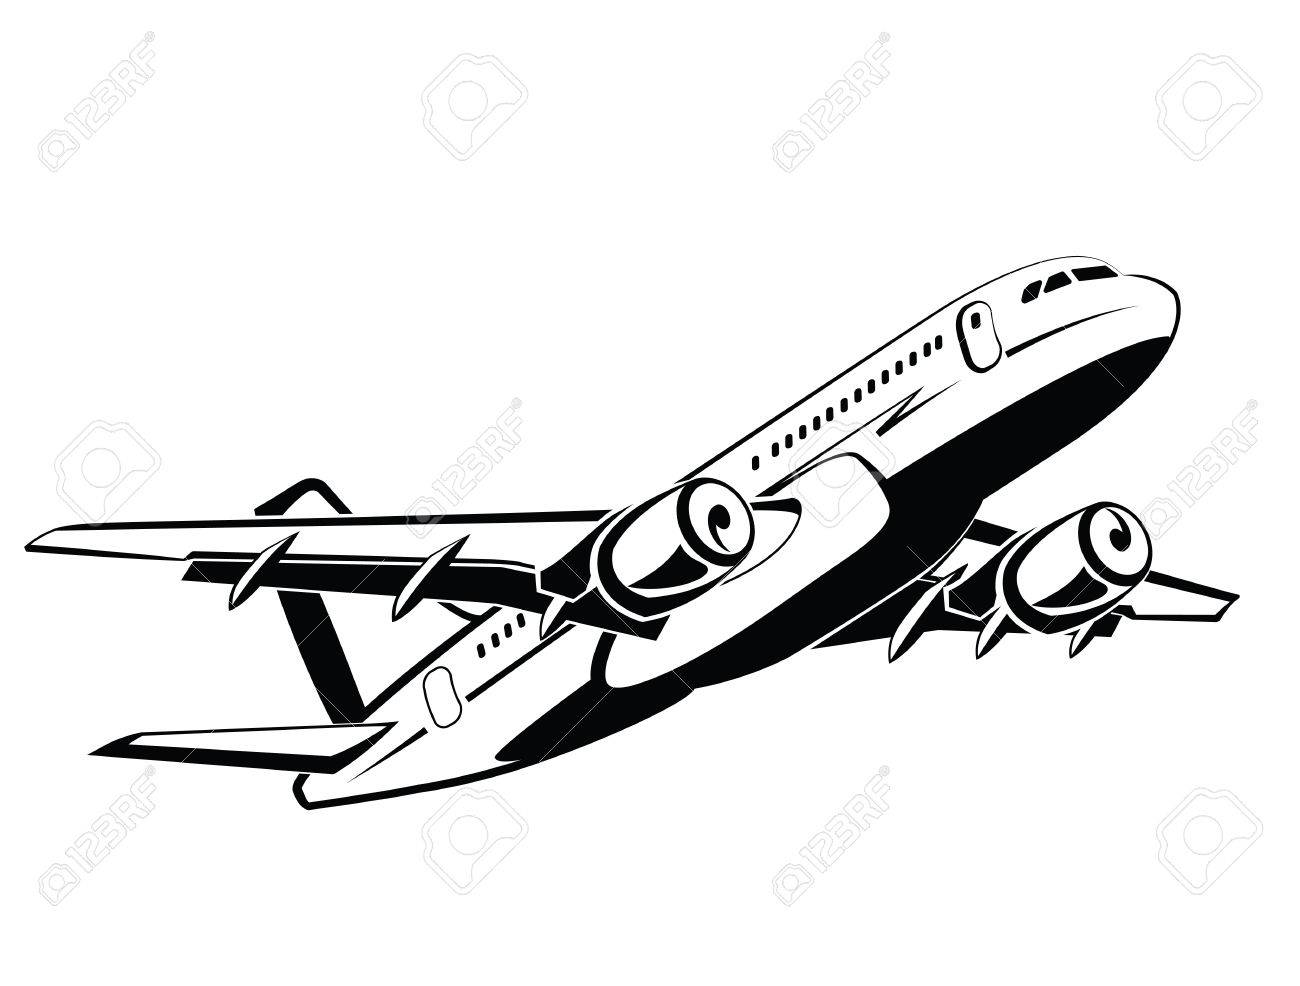 Coloring Page Airplane Outline : Airplane drawing at getdrawings free for personal use